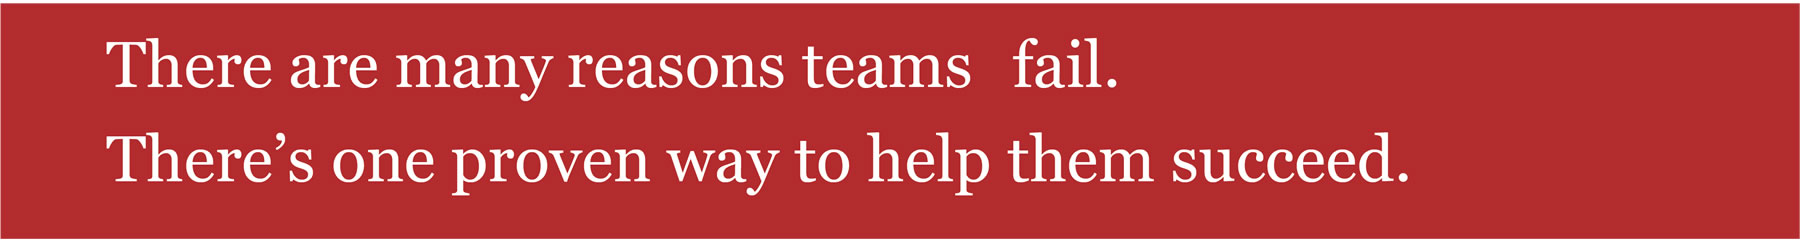 There are many reasons teams fail. There's one proven way to help them succeed.